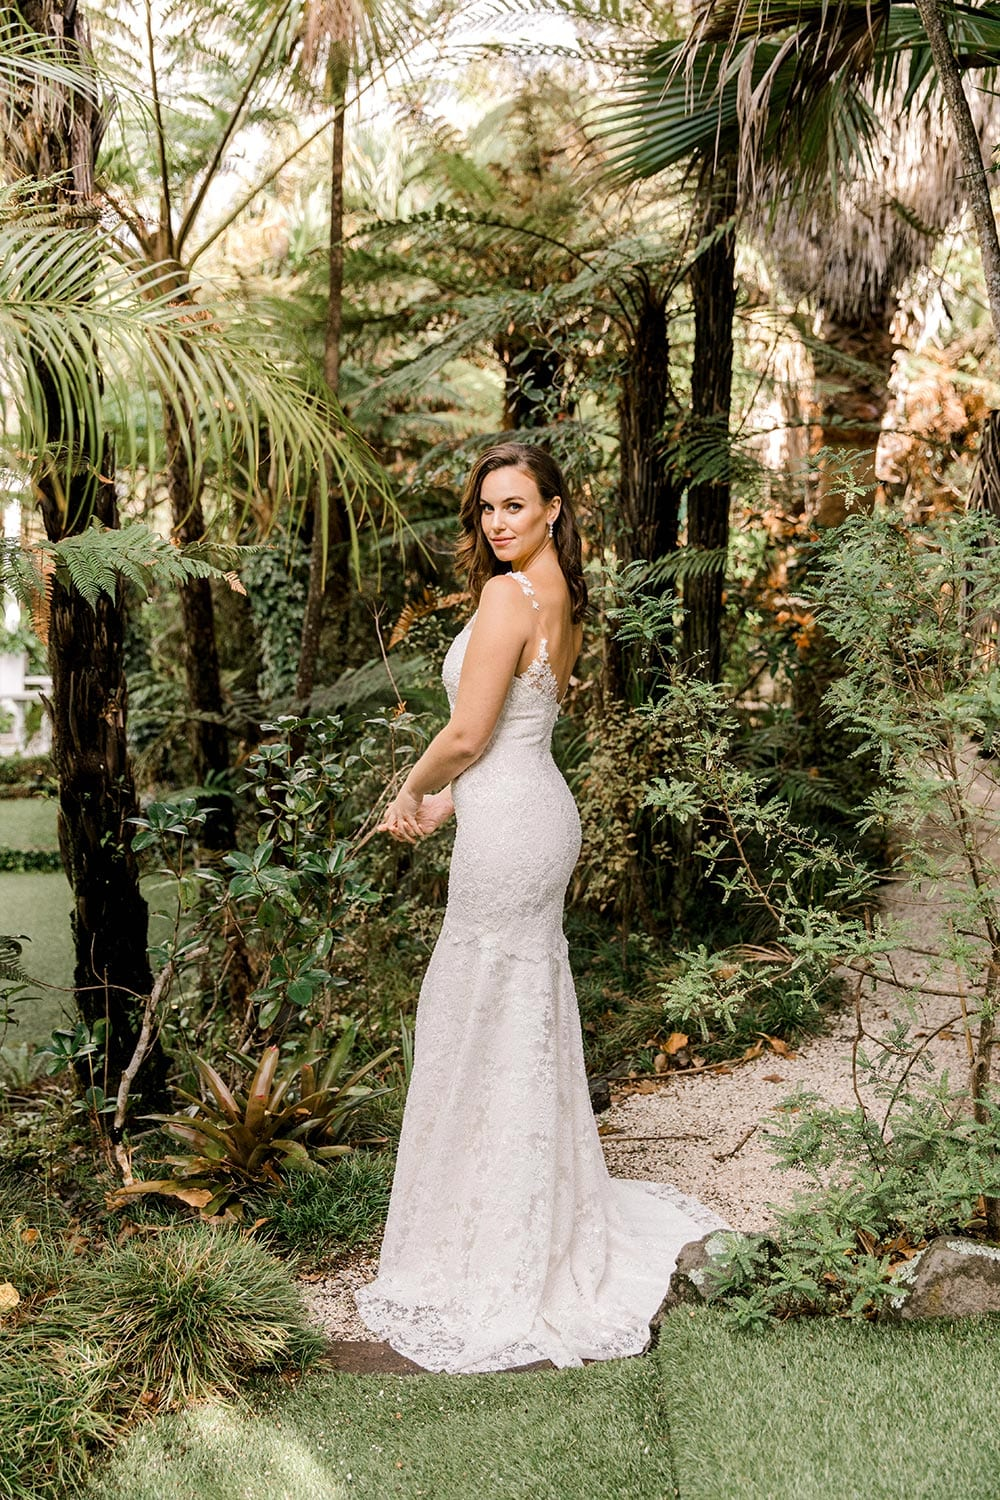 Dakota Wedding Dress from Vinka Design. This full-lace wedding dress is form fitting, sculpting the body beautifully. Delicate beaded lace flowers are hand-appliqued up the sheer nude tulle straps on both the front & back. Full length portrait with model turned away showing detail on back of dress and train, photographed at Tui Hills by Emmaline Photography.